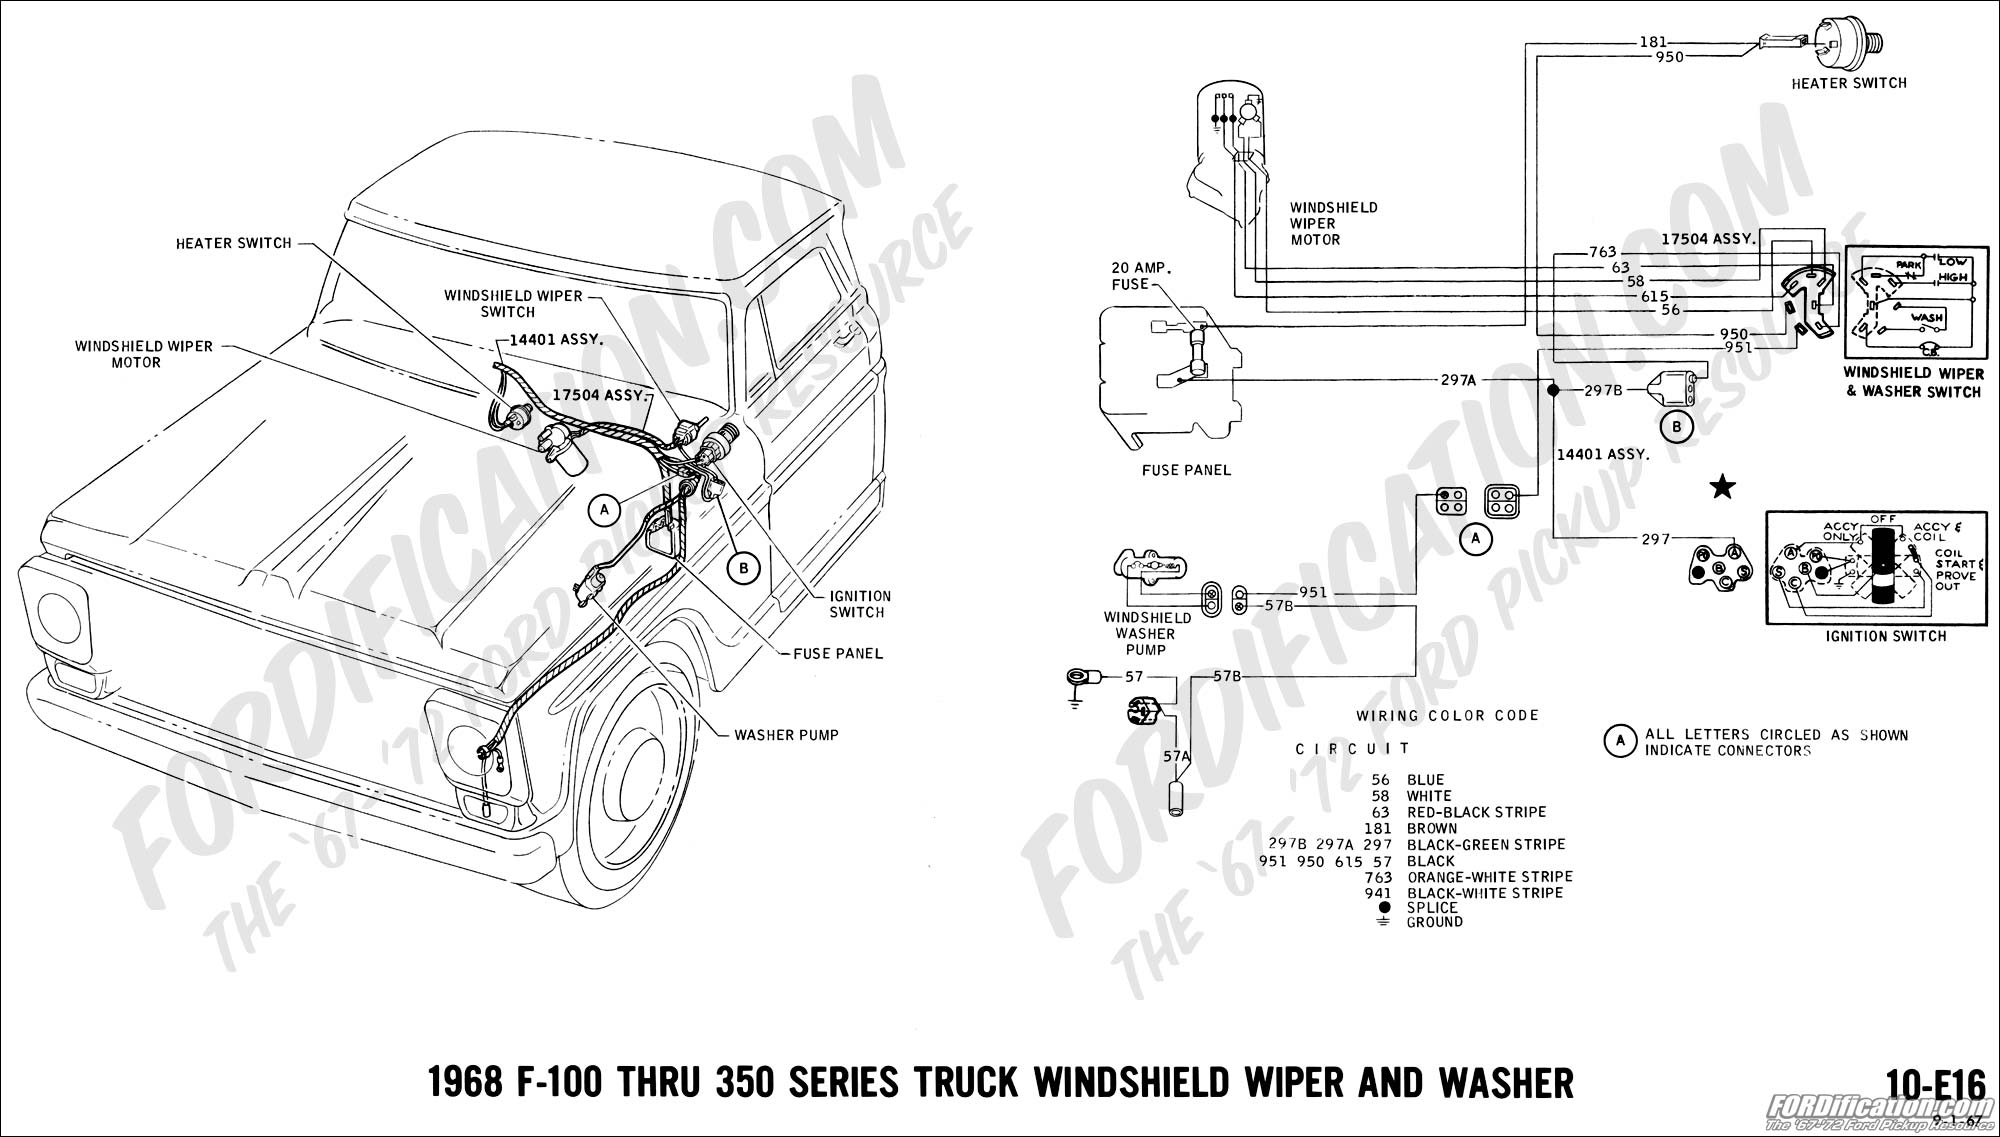 2000 Silverado Horn Wiring Diagram Library. F250 Horn Wiring Diagram Schematics Diagrams U2022 Rh Schoosretailstores 2000 Chevy Silverado. GM. 2004 GMC Wiring Diagrams Free Horn At Scoala.co